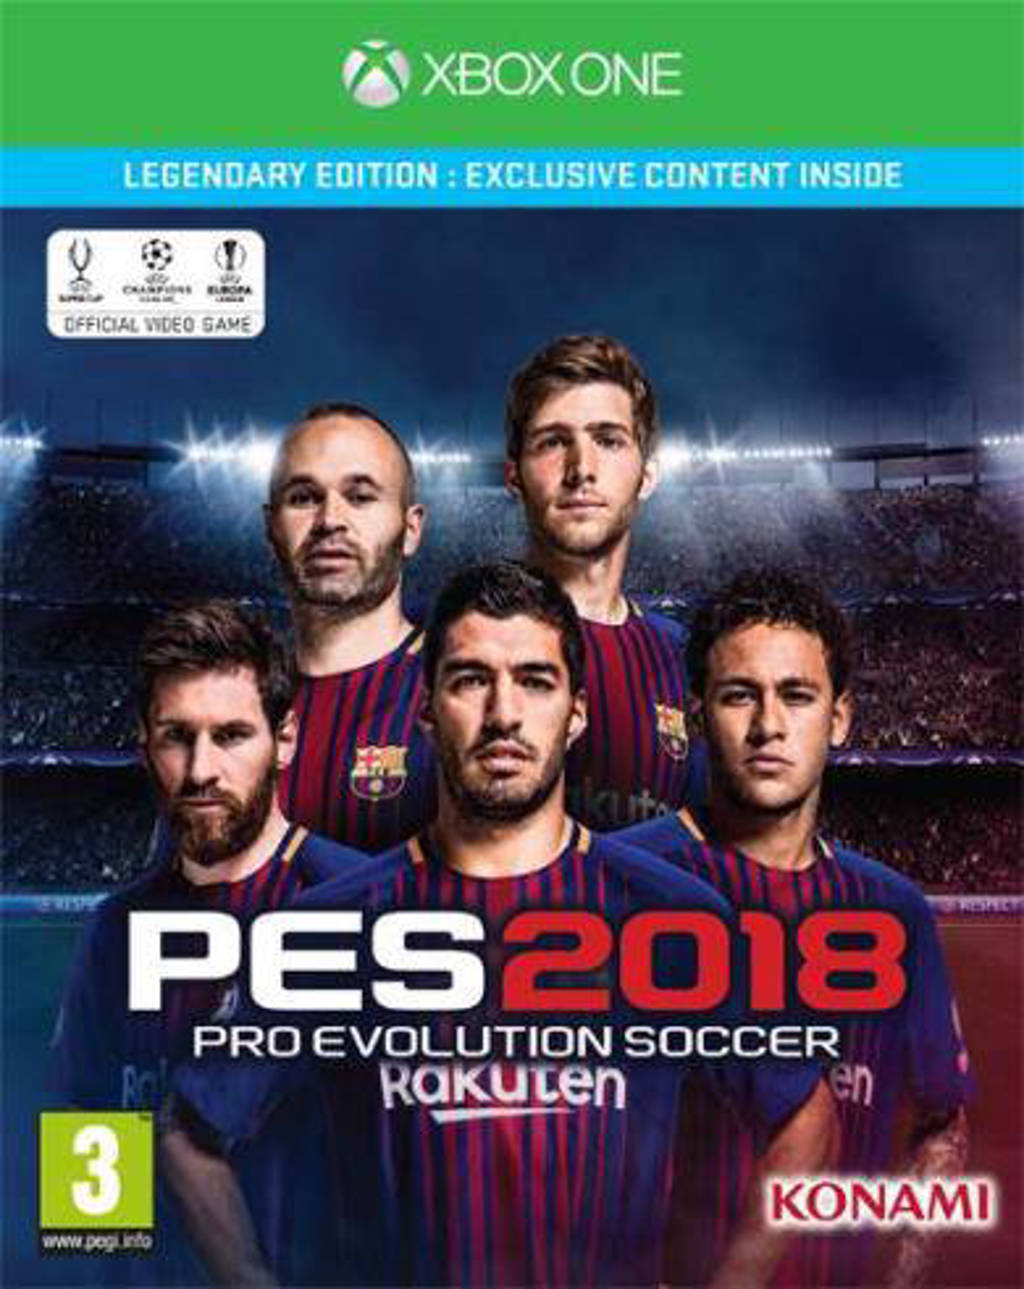 Pro evolution soccer 2018 (Legendary edition) (Xbox One)